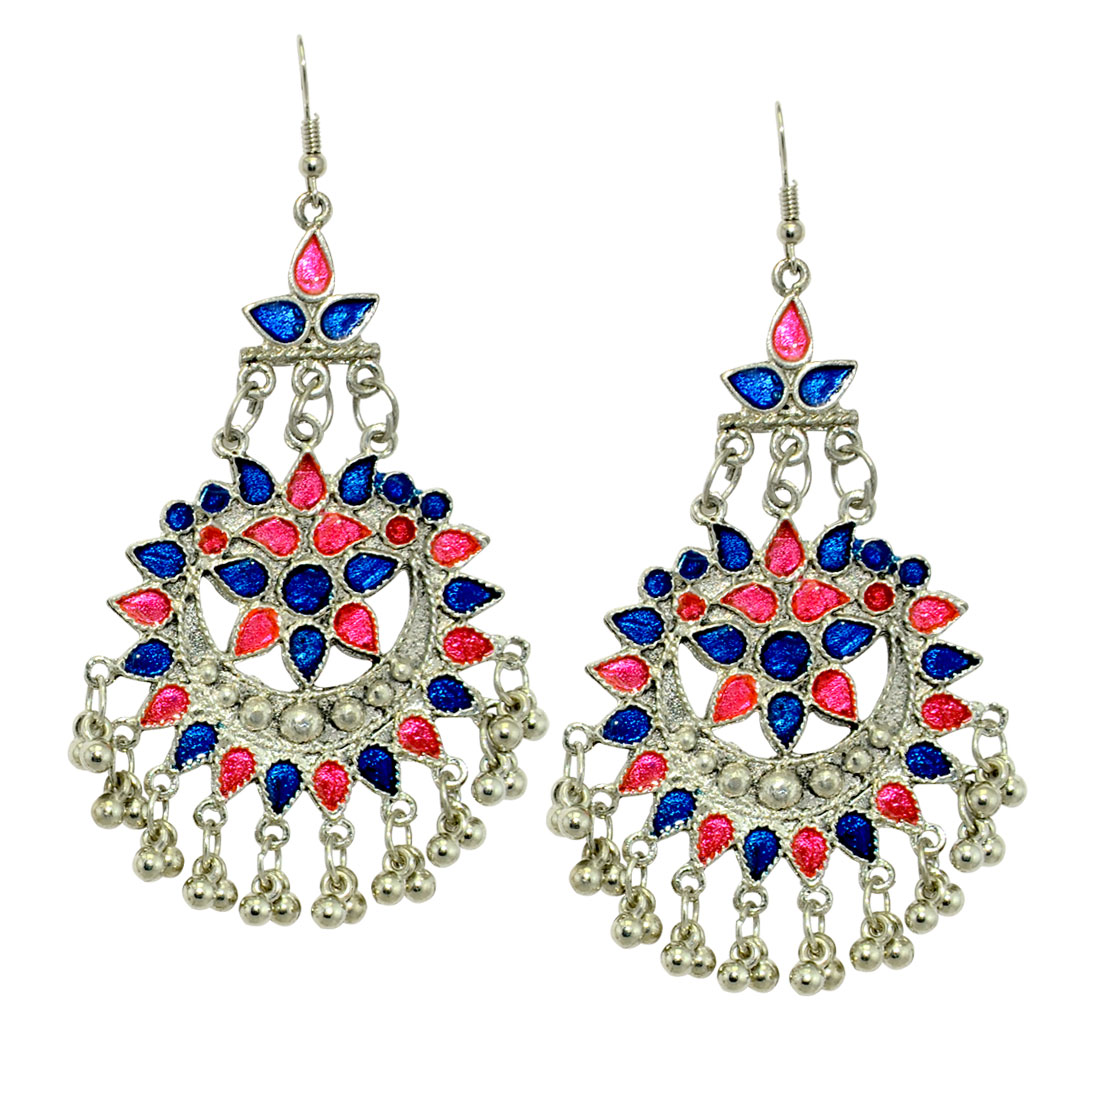 Oxidized Chandbali Earrings Pair For Girls And Women